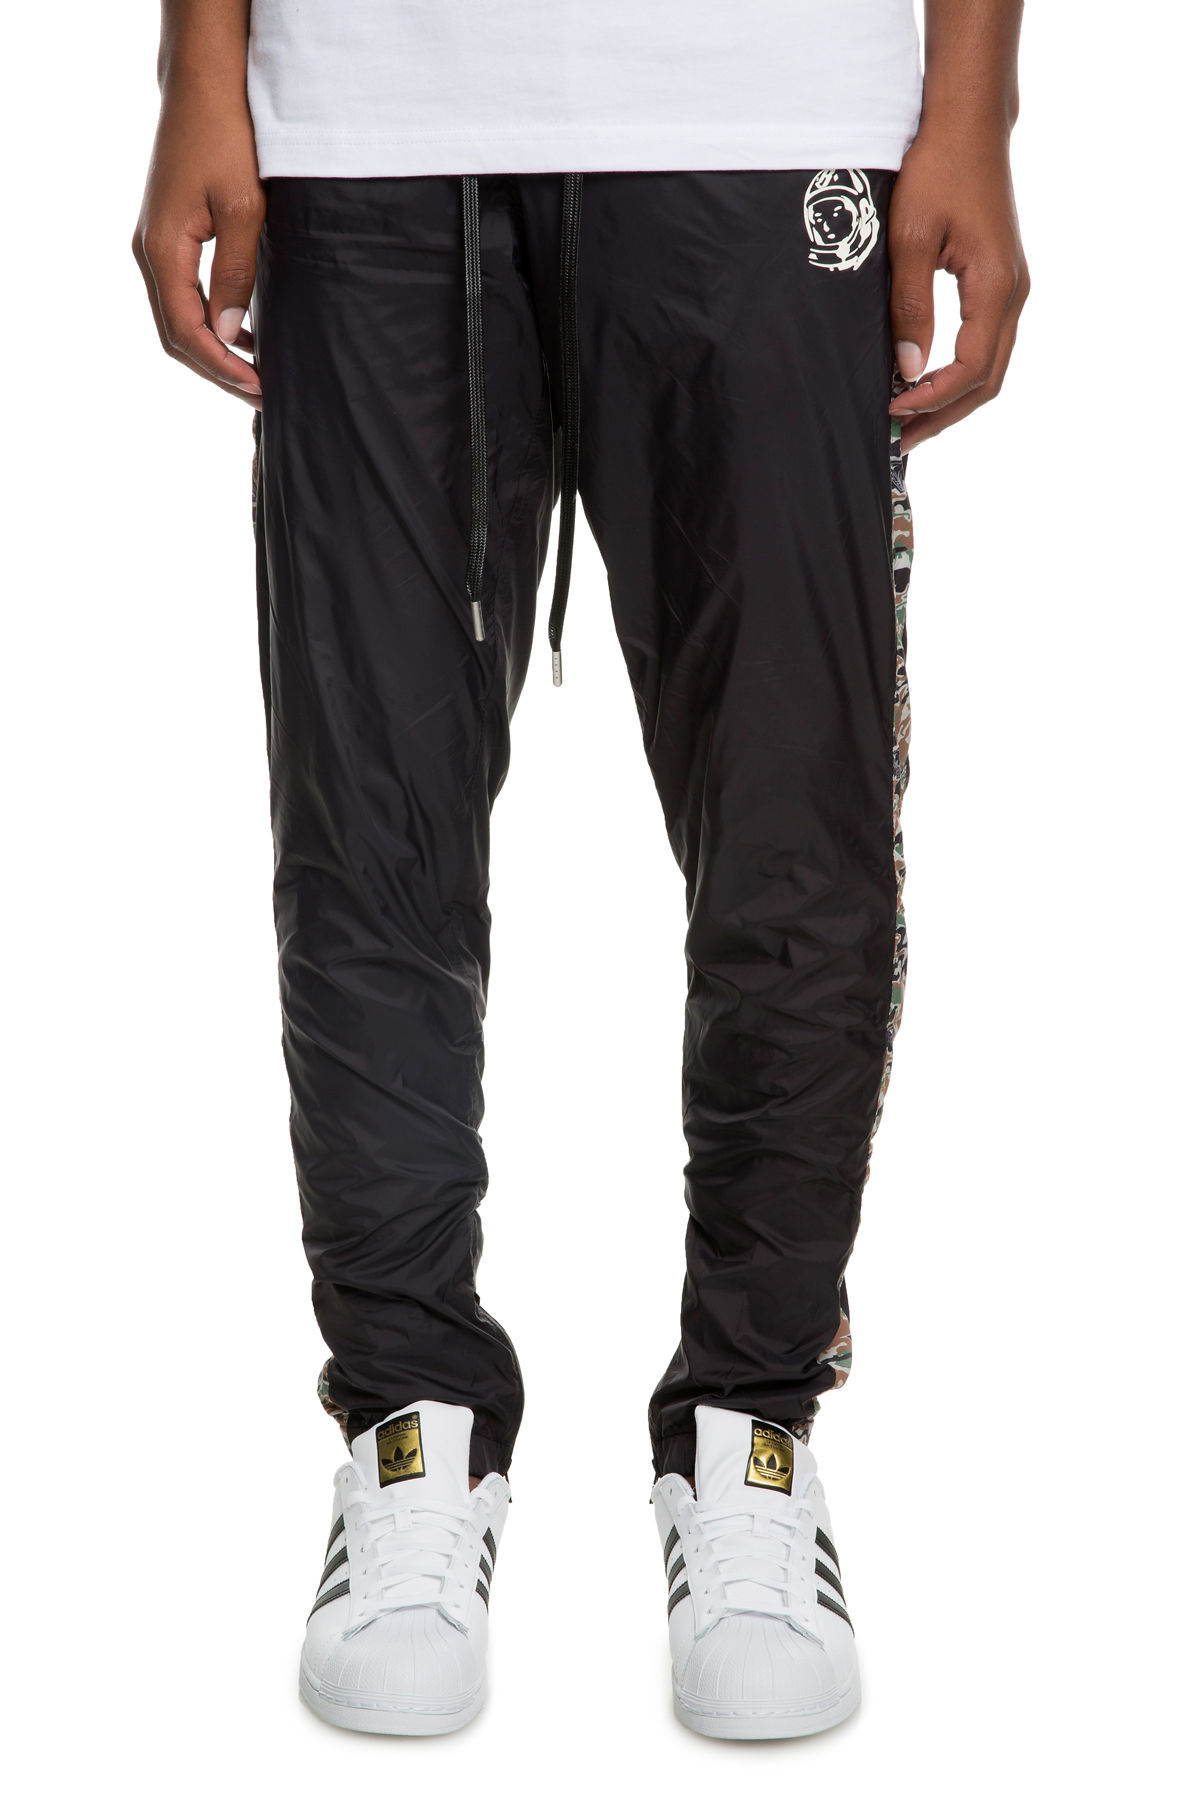 Image of The Trail Mx Pants in Black